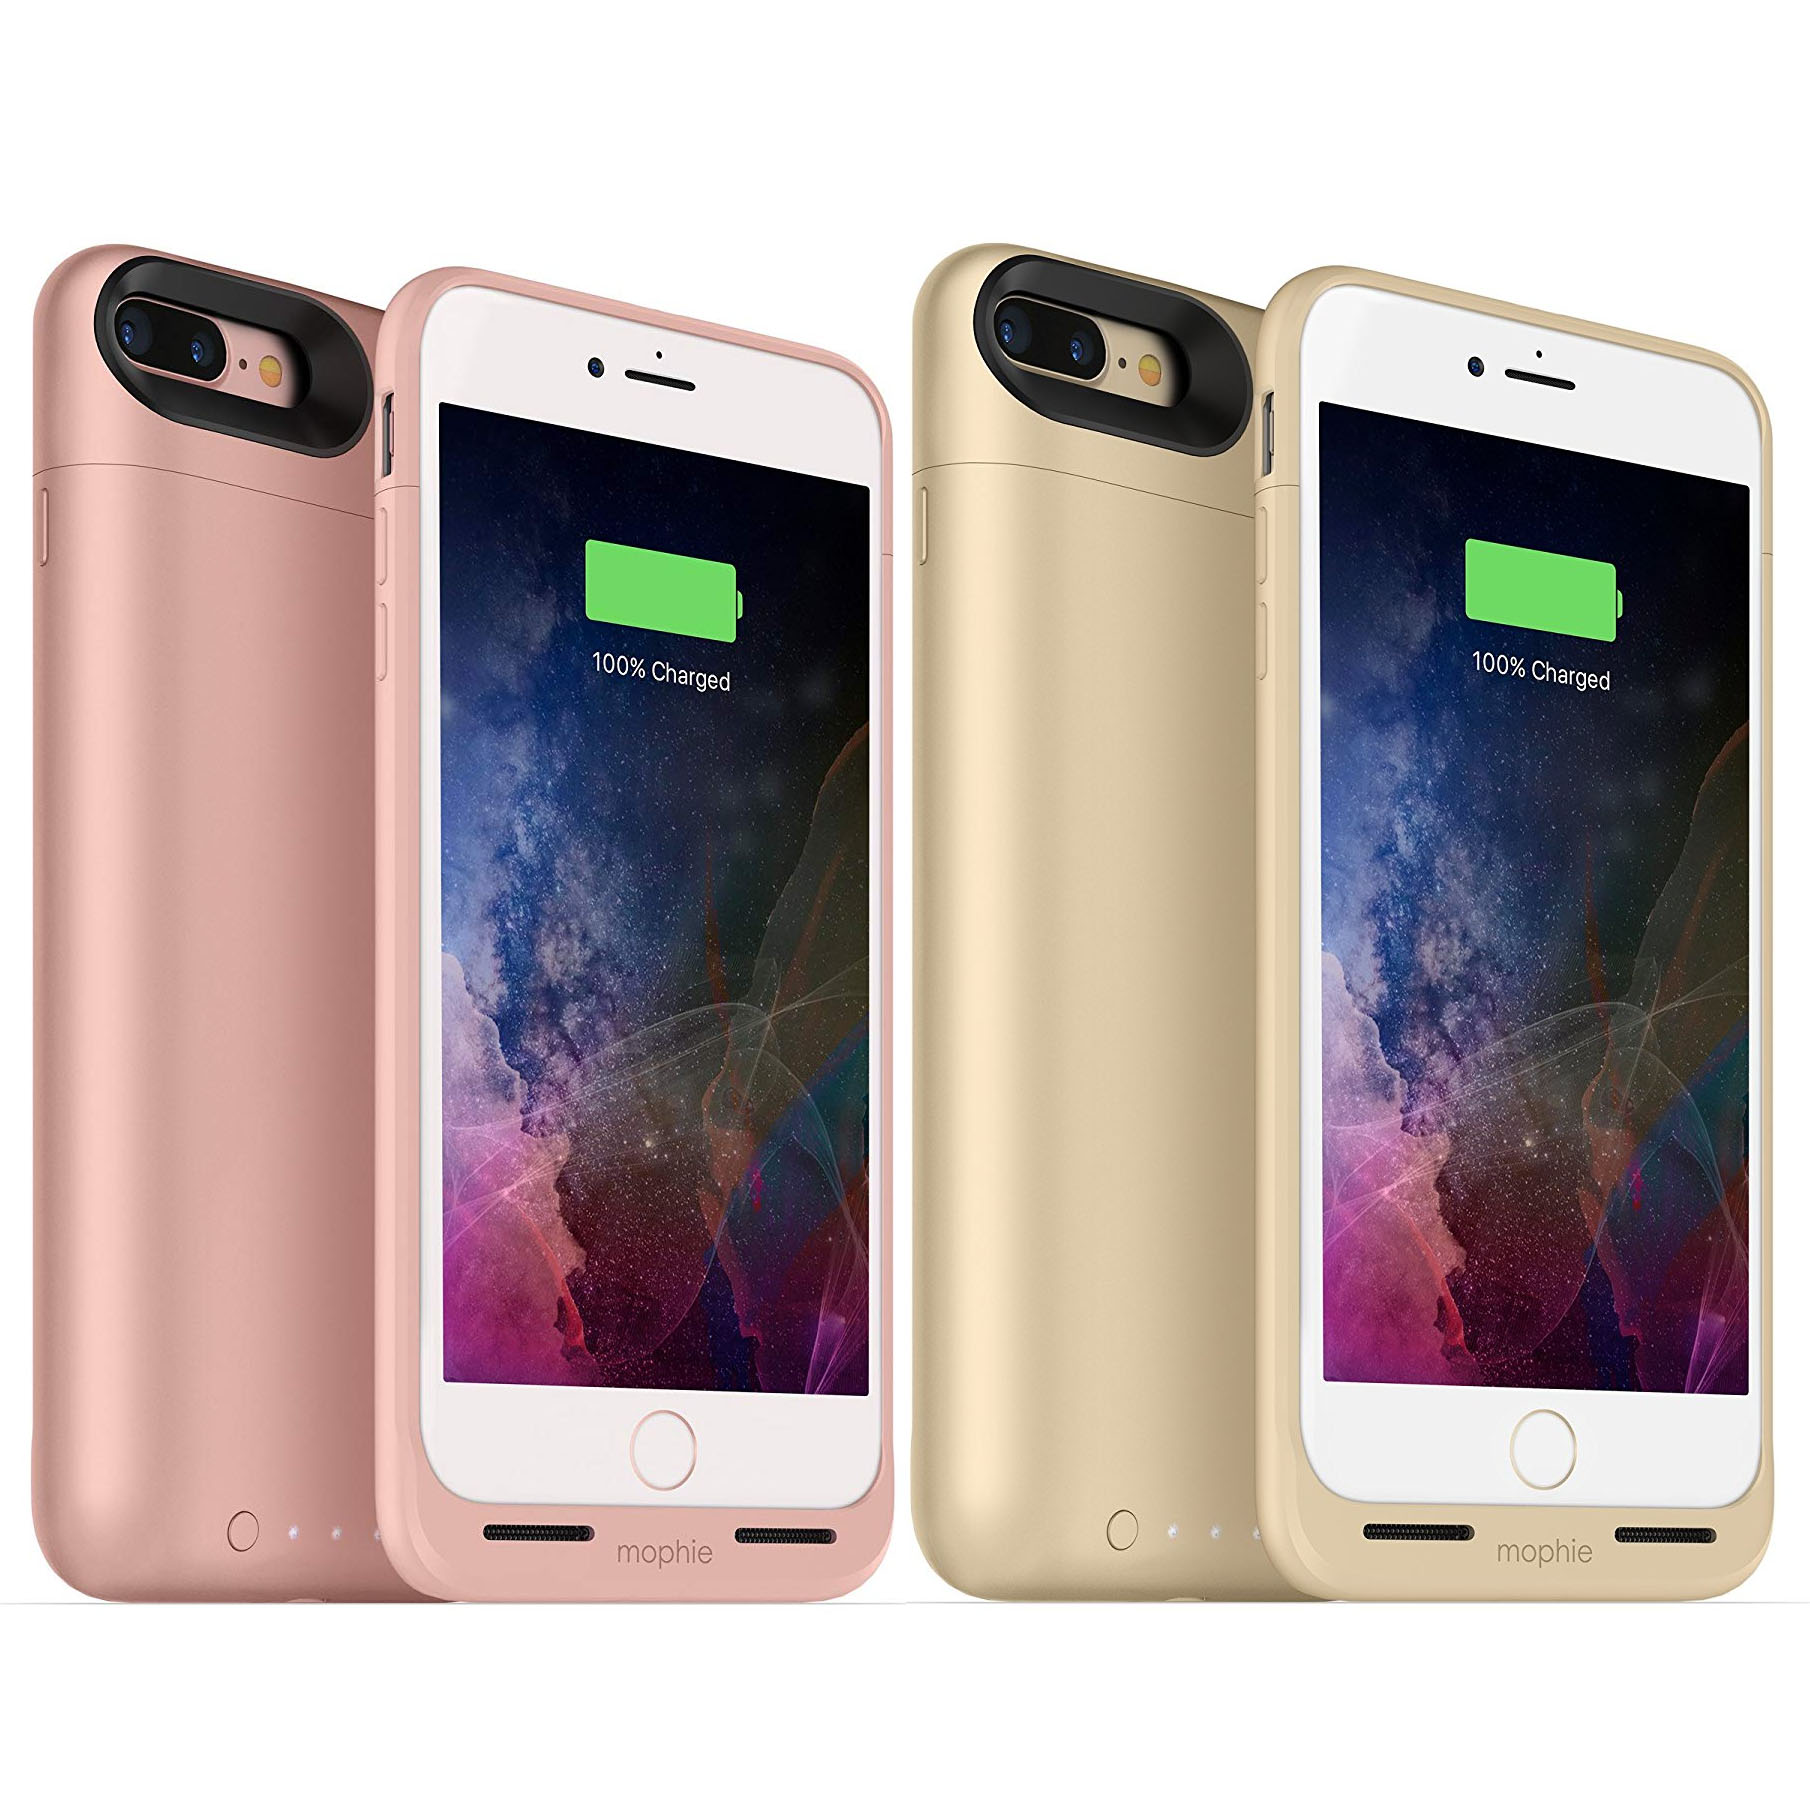 cheap for discount 59dcd 65c05 Details about mophie juice pack MFI Wireless Charging Battery Case for  iPhone 8/7, 8/7 PLUS